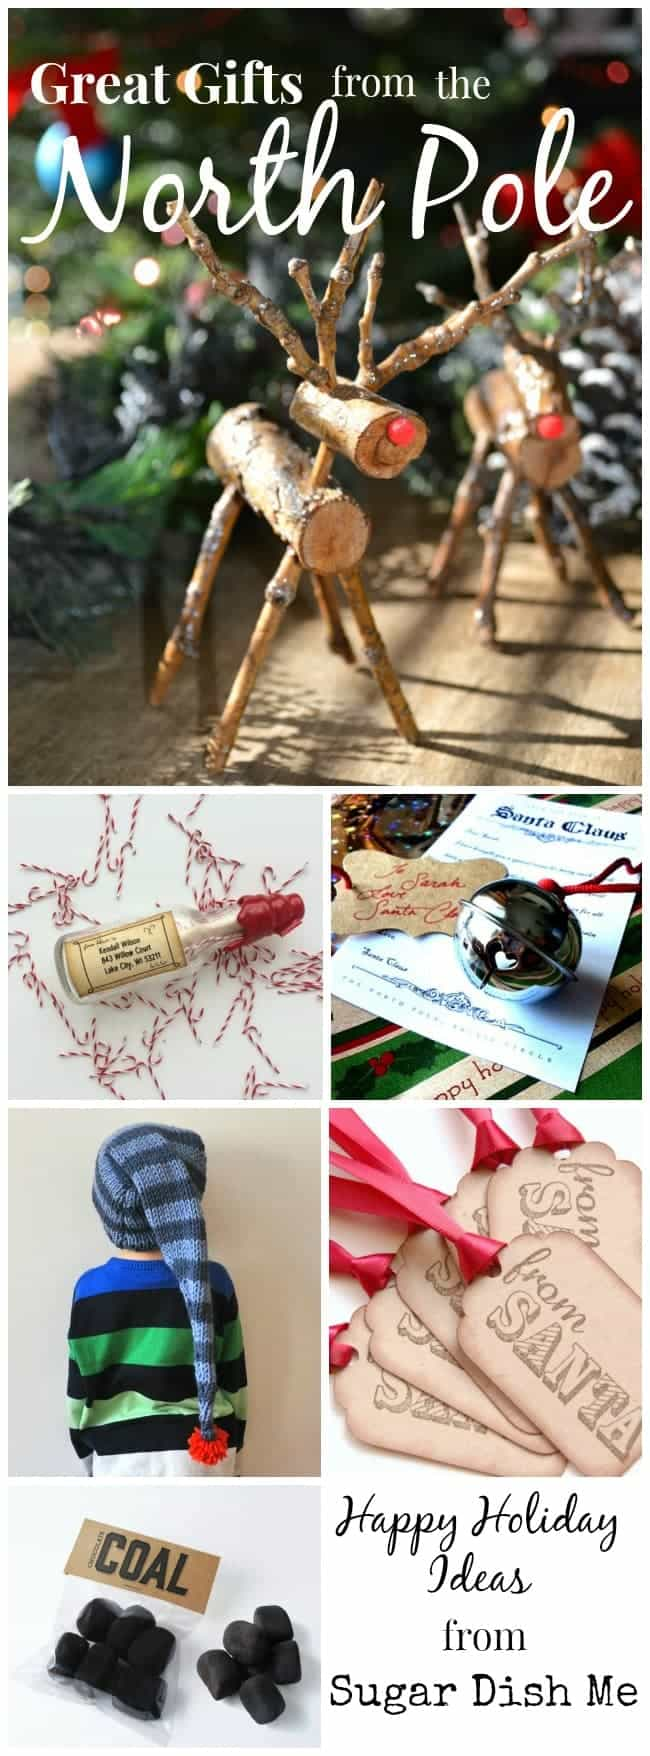 Great Gift Ideas from The North Pole